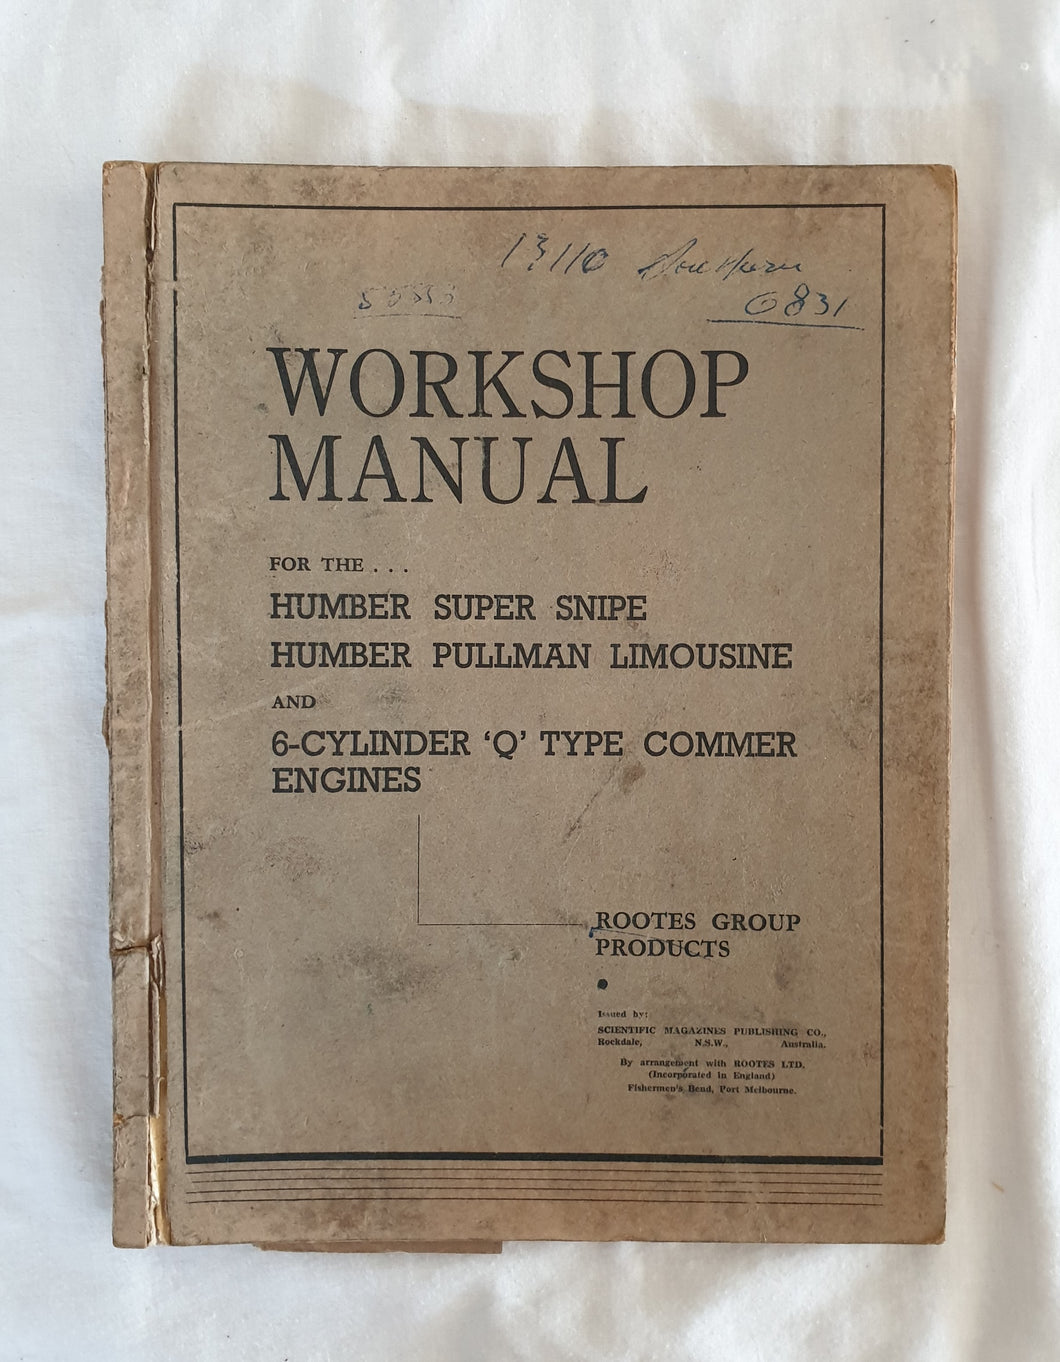 Workshop Manual for the Humber Super Snipe Humber Pullman Limousine and 6-Cylinder